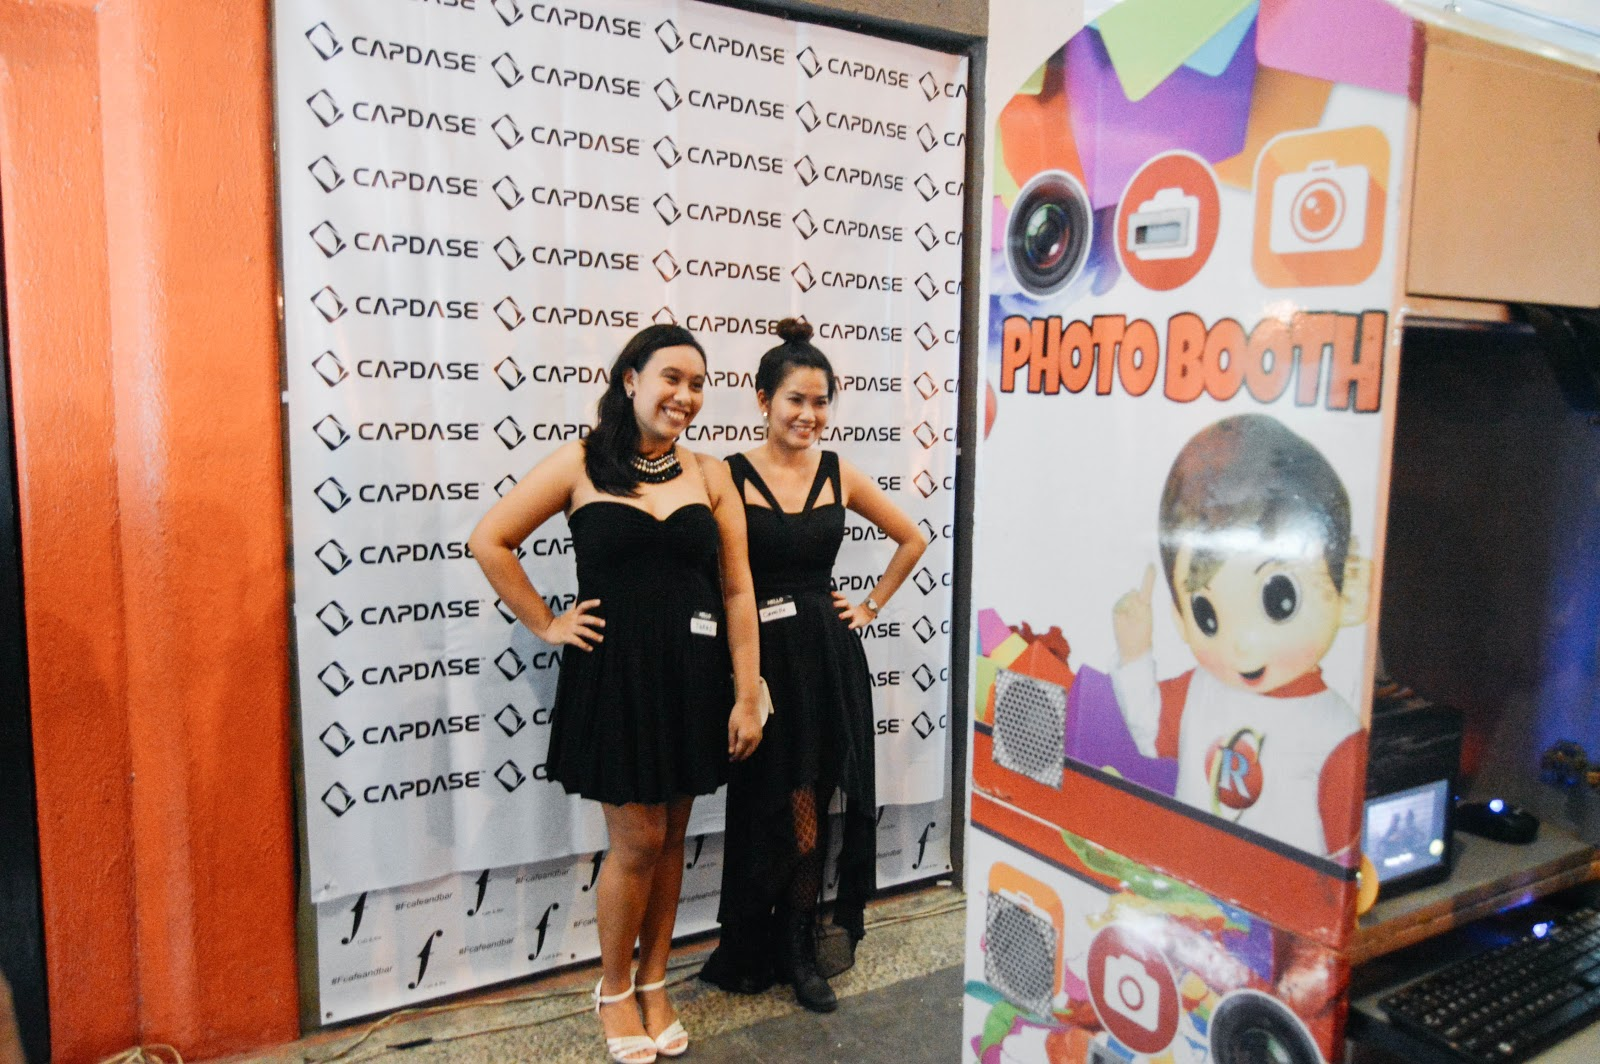 fashion blogger, style blogger, cebu blogger, cebu style blogger, blogger, filipina blogger, cebuana blogger, nested thoughts, katherine cutar, katherine anne cutar, katherineanika, katherine annika, ootd, ootd plipinas, filipina blogger, filipino blogger, cebu blogging community, cebu bloggers, bloggers of cebu, cbc anniversary, cebu blogging community anniversary, yamba, kublai khan, capdase, f cafe and bar, party, black, black party, photo boot, hooq ph, hooq, globe telecom